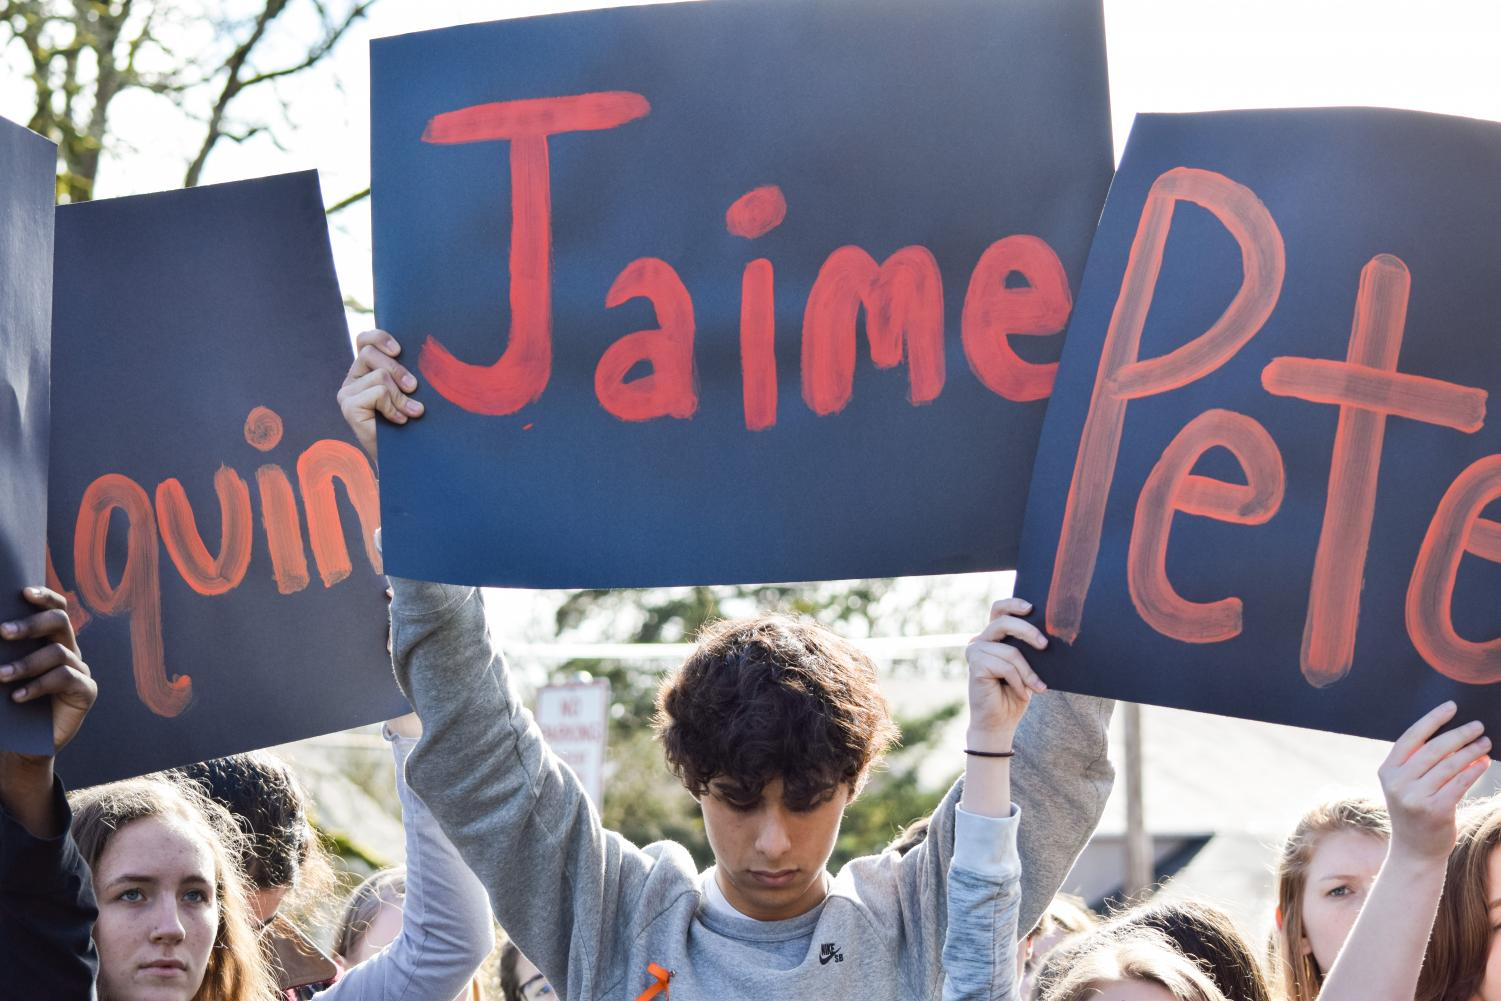 Students participated in a nationwide walk out and stood in silence for 17 minutes to honor the 17 killed in Parkland, Florida one month prior.